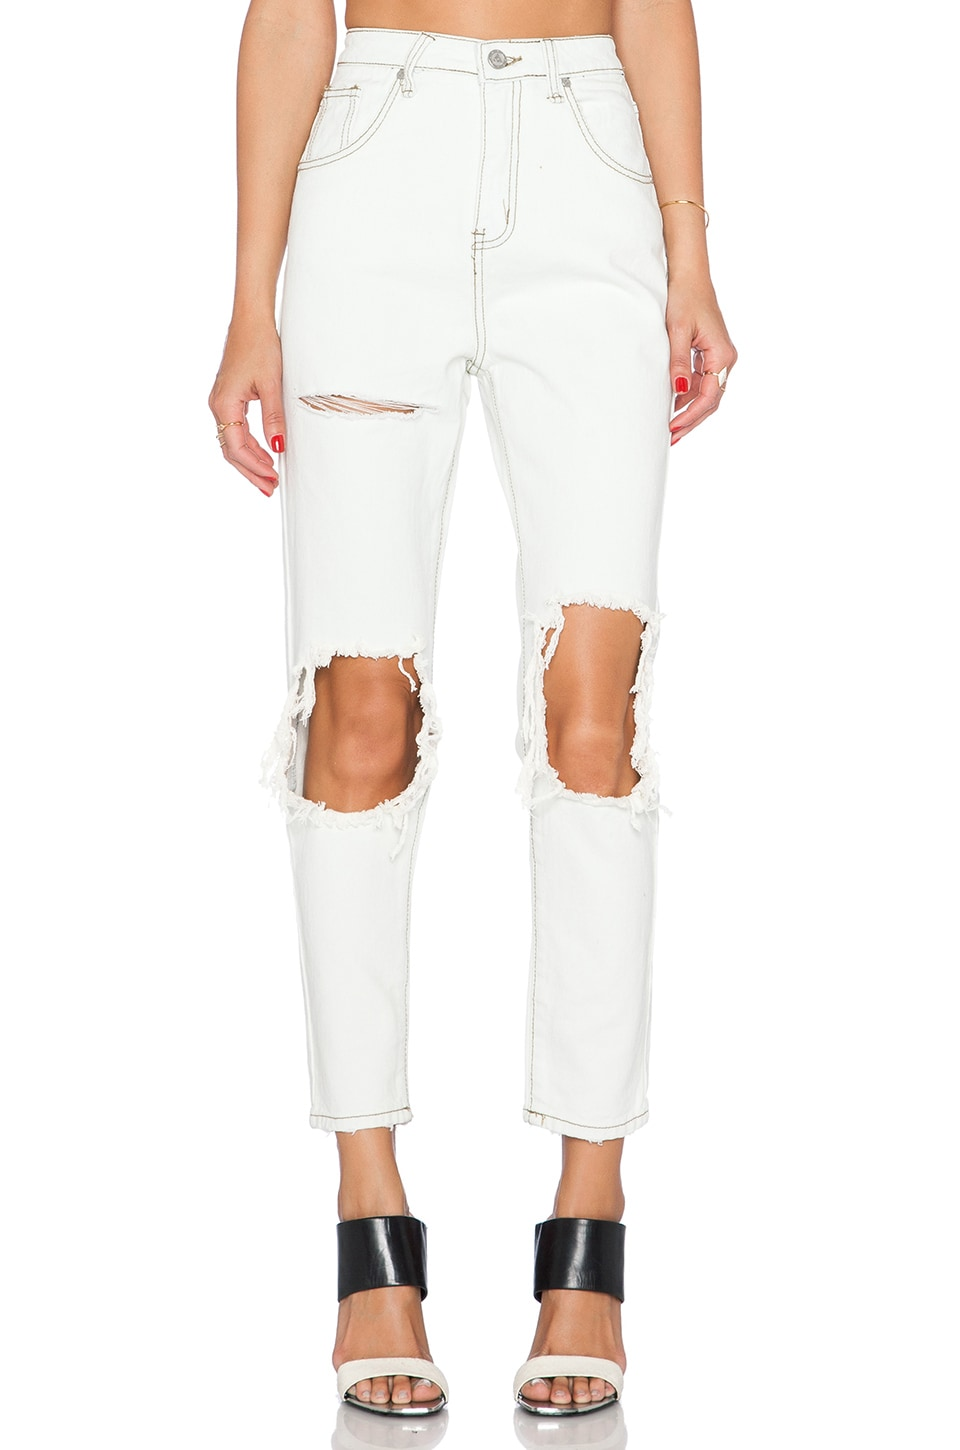 UNIF Costa High Rise Skinny in Dirty White